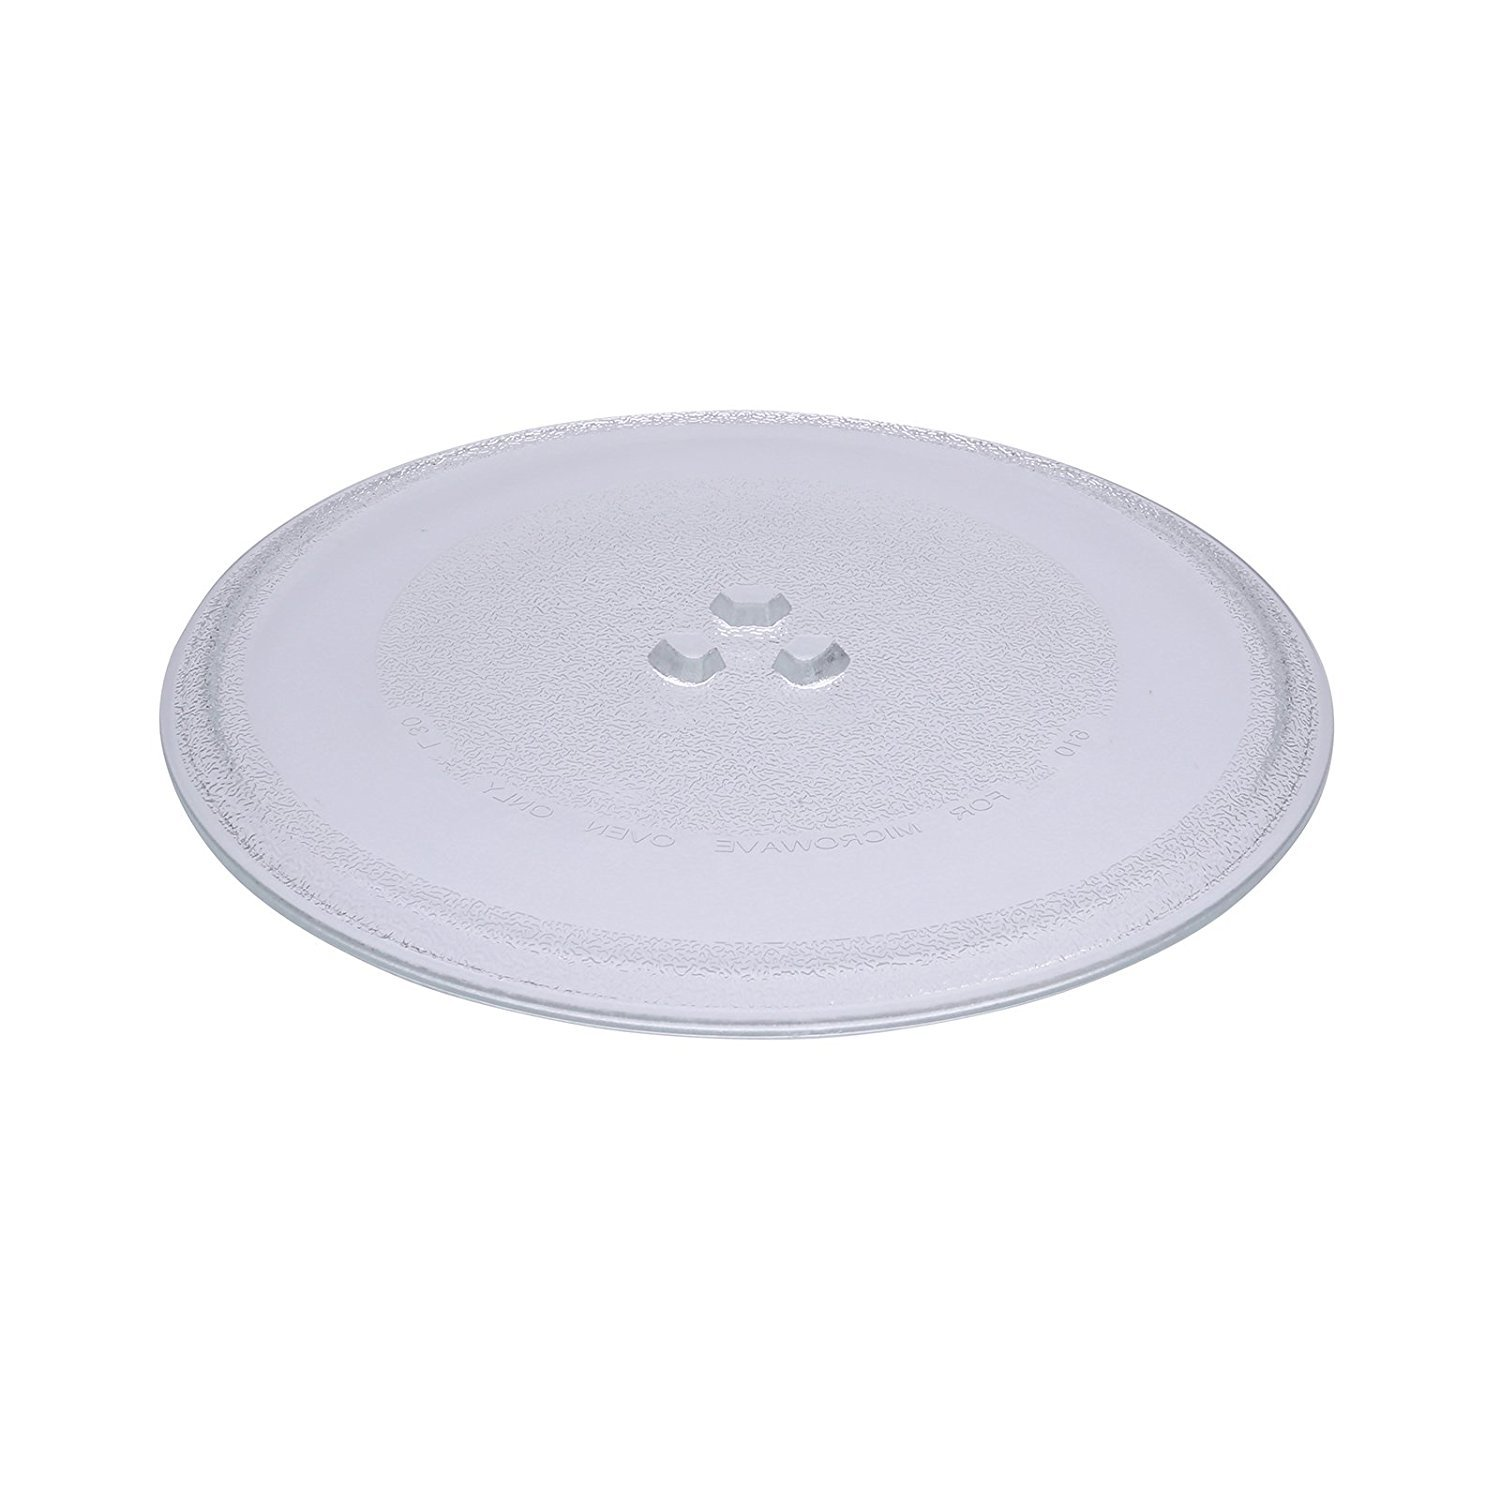 First4Spares Premium Universal Replacement Glass 3 Lug Turntable Plate for Microwaves - (255mm Diameter)